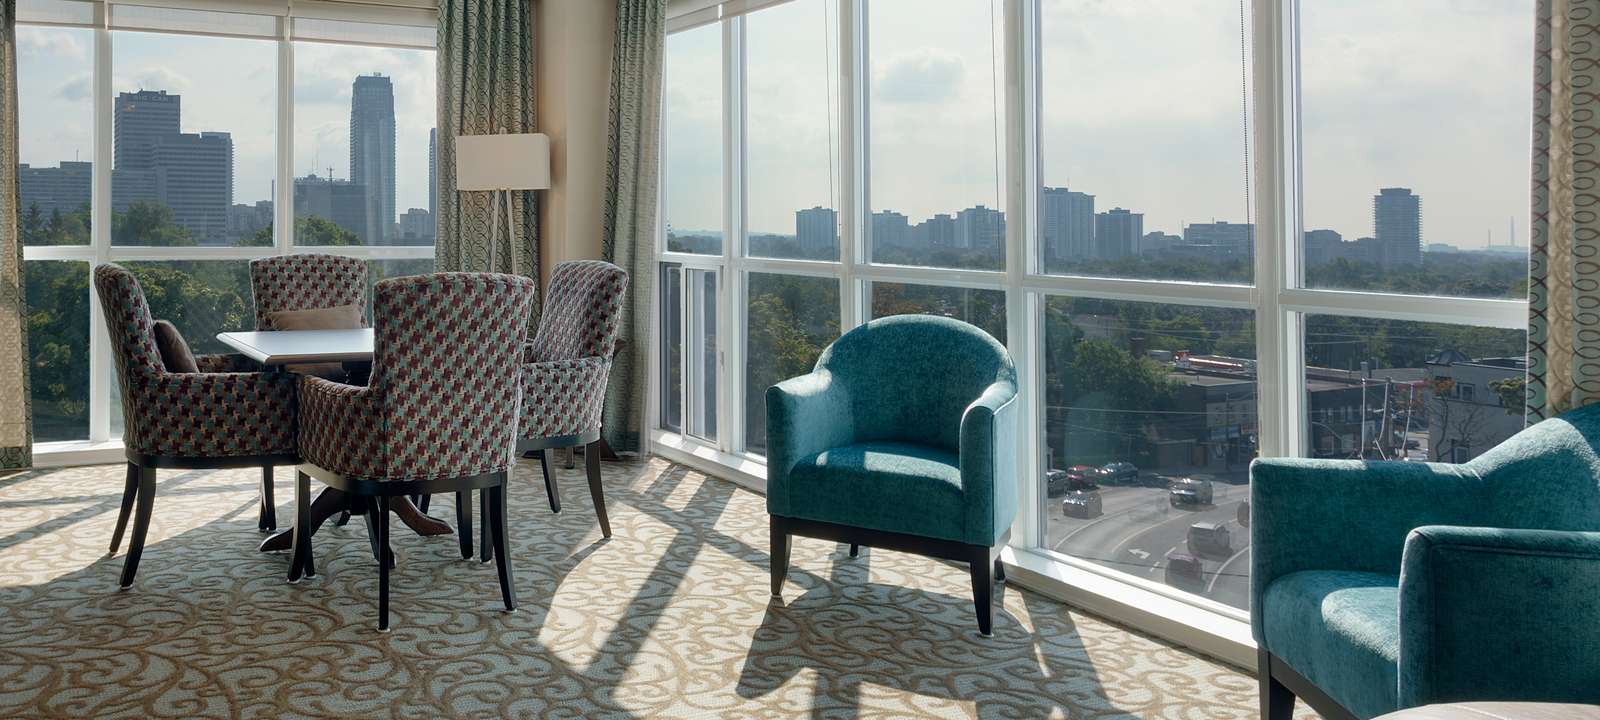 Amica On The Avenue senior living residence sitting area with sunny city view.